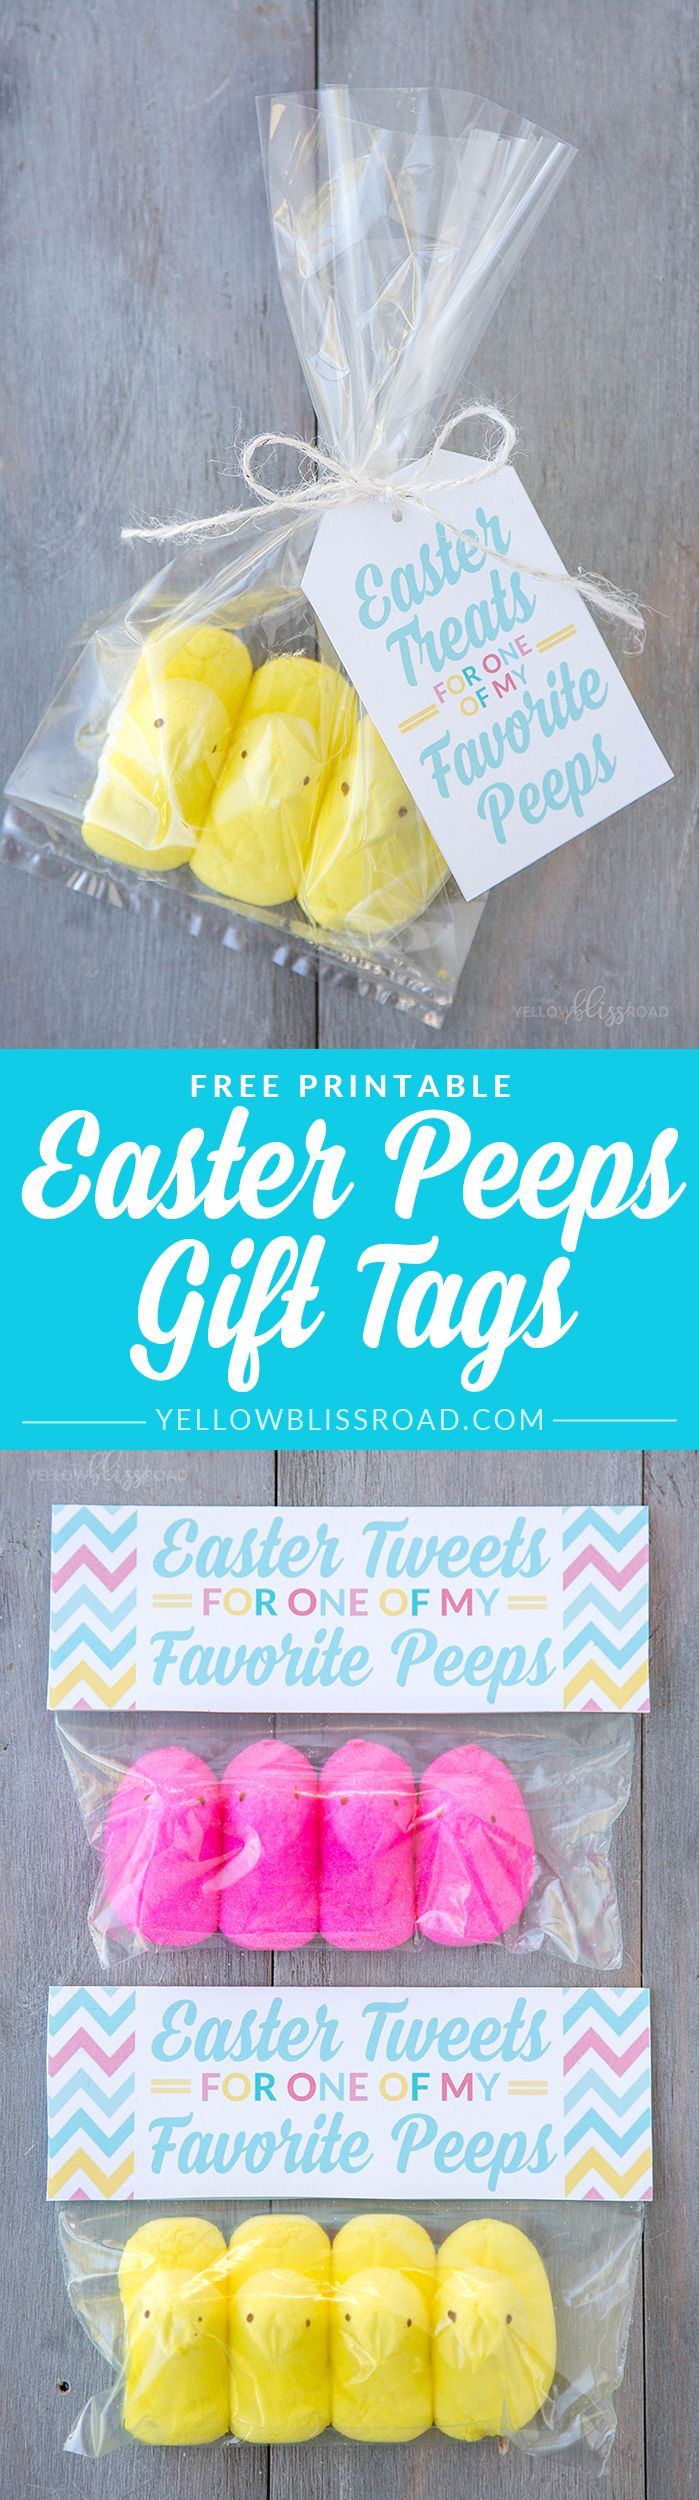 25 unique easter gift ideas on pinterest egg boxes easter free printable peeps easter gift tags use these free printable gift tags to make sweet negle Choice Image